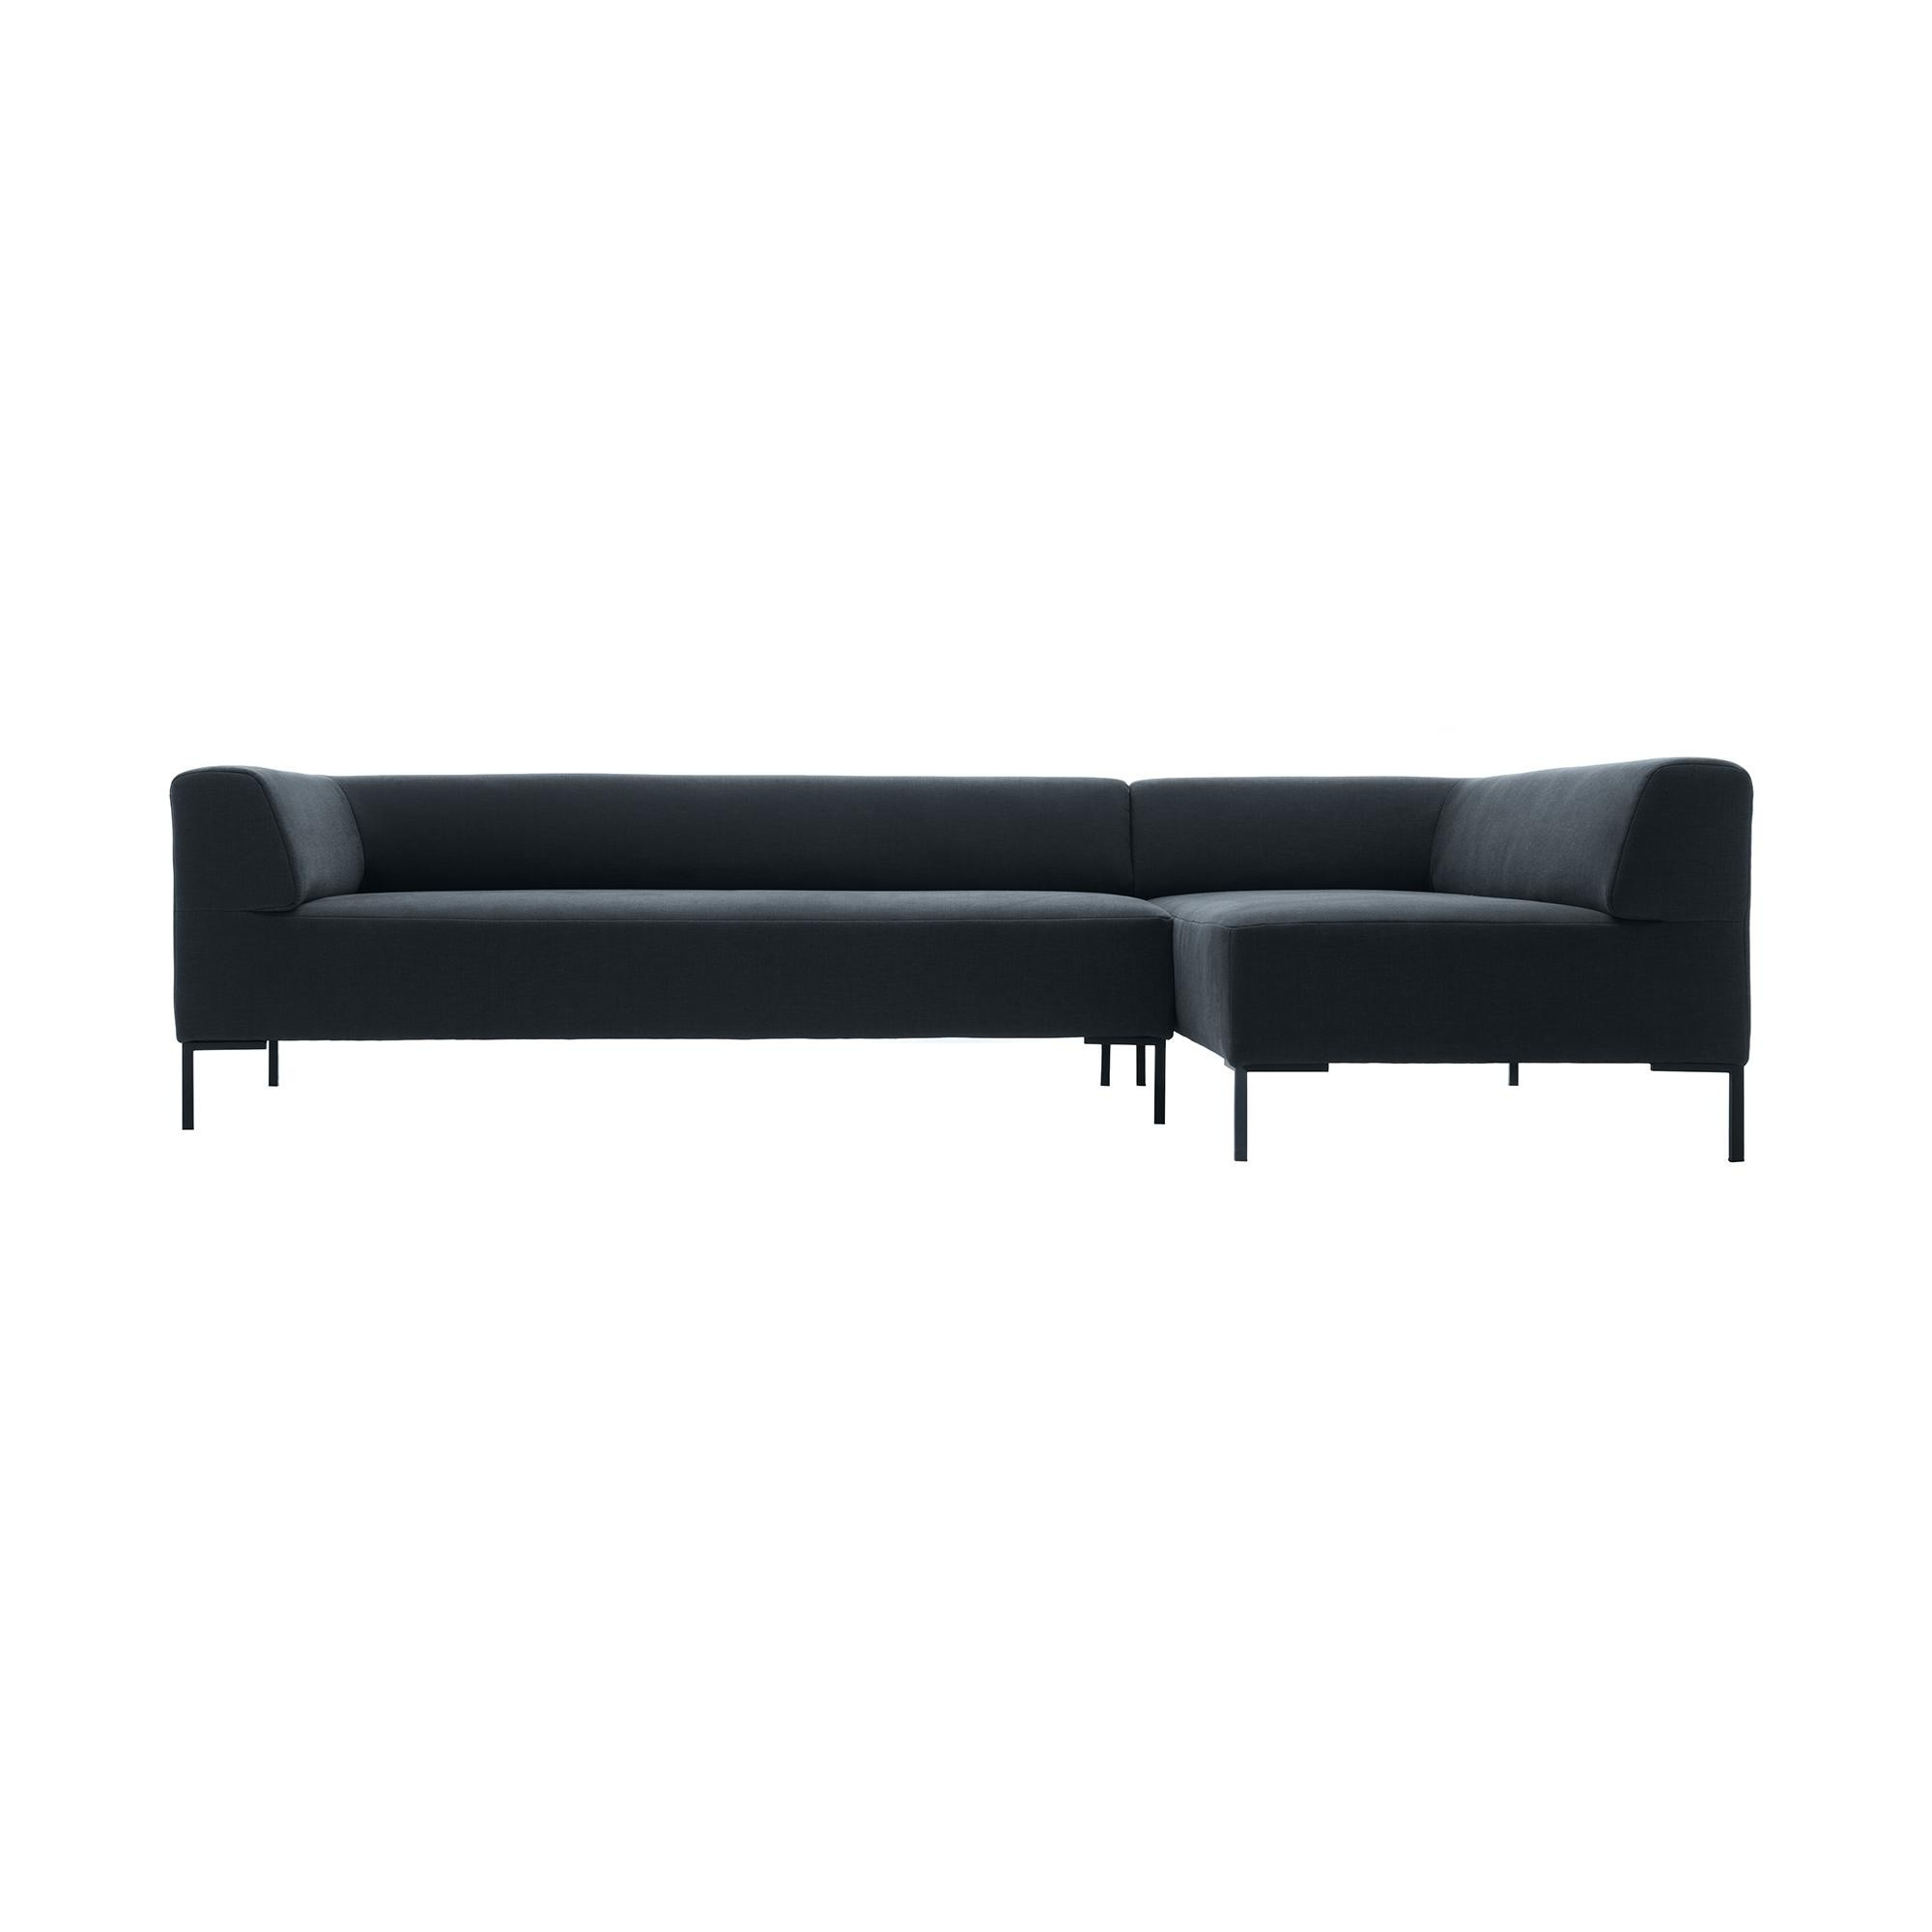 Freistil 185 Lounge Sofa 257x180cm